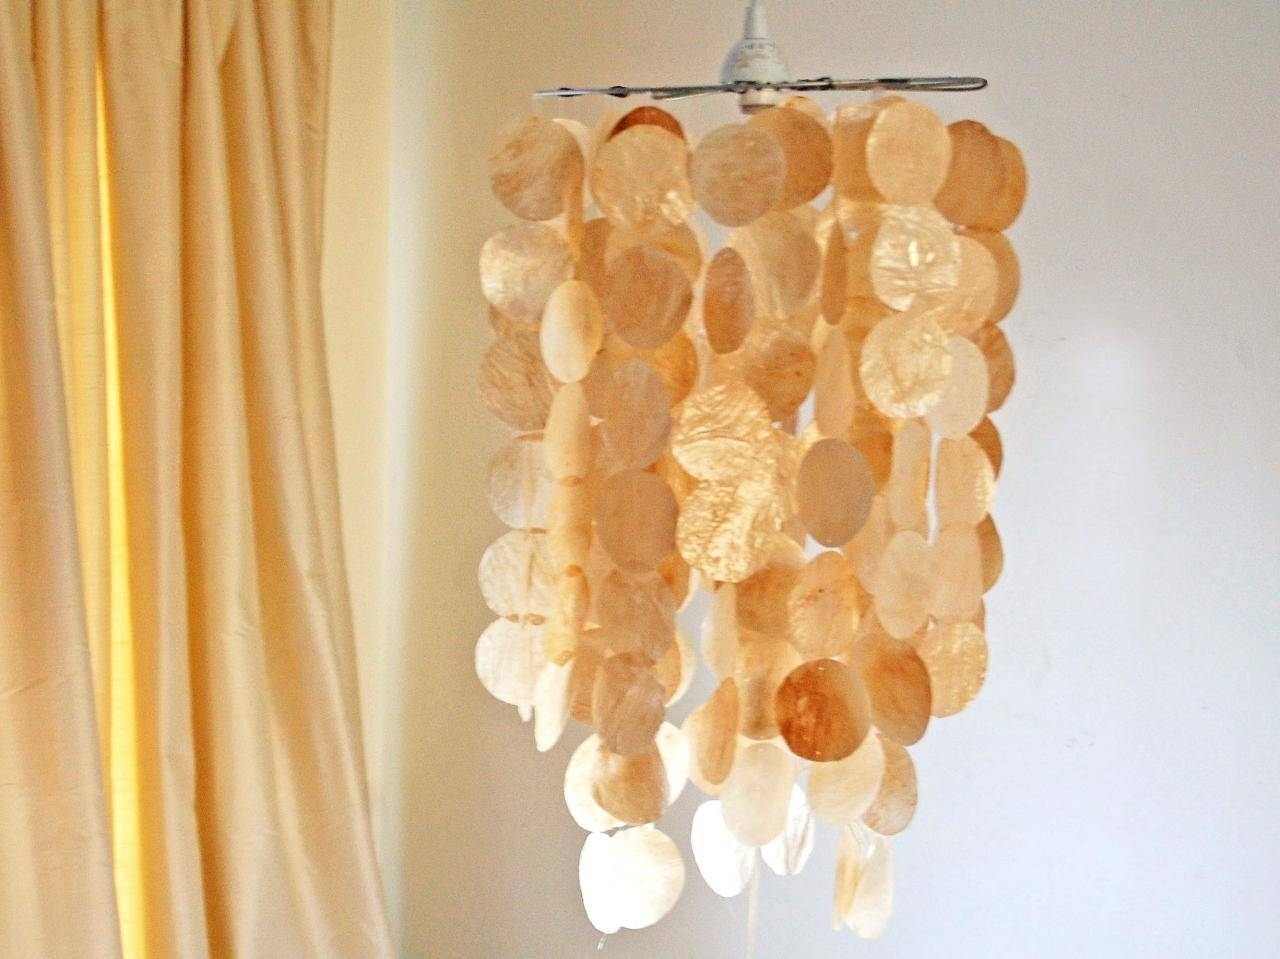 Brighten Up With These Diy Home Lighting Ideas | Hgtv's Decorating inside Make Your Own Pendant Lights (Image 4 of 15)